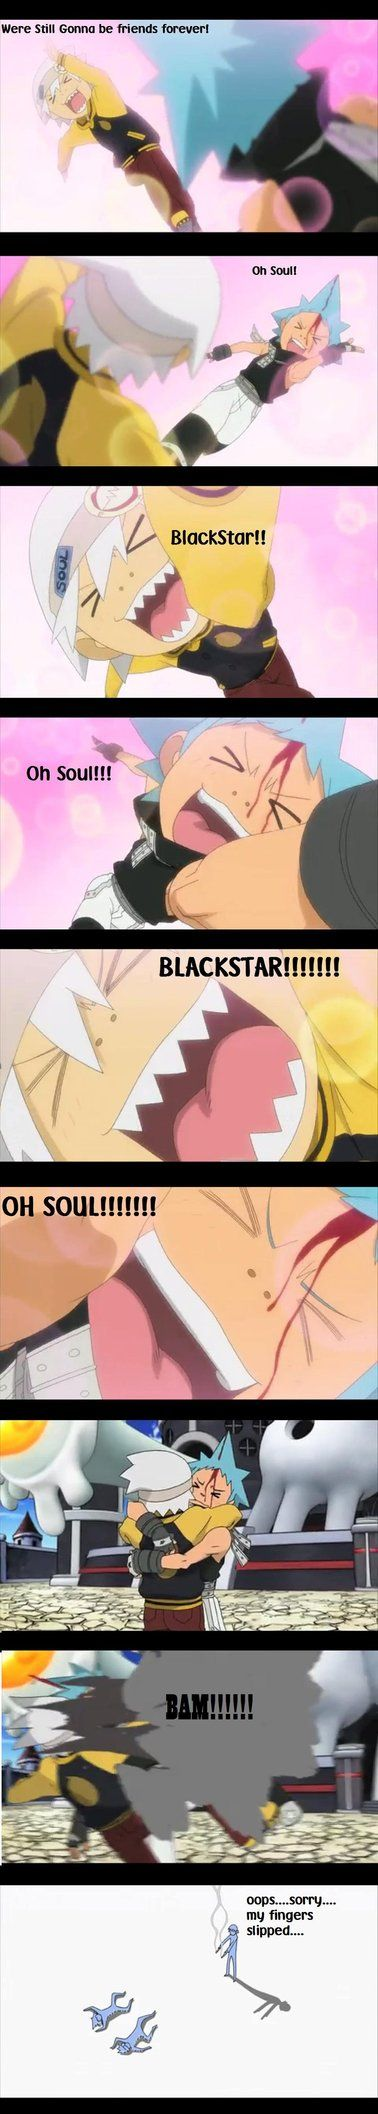 Soul and Blackstar Comic by PockyGurl14.deviantart.com on @DeviantArt